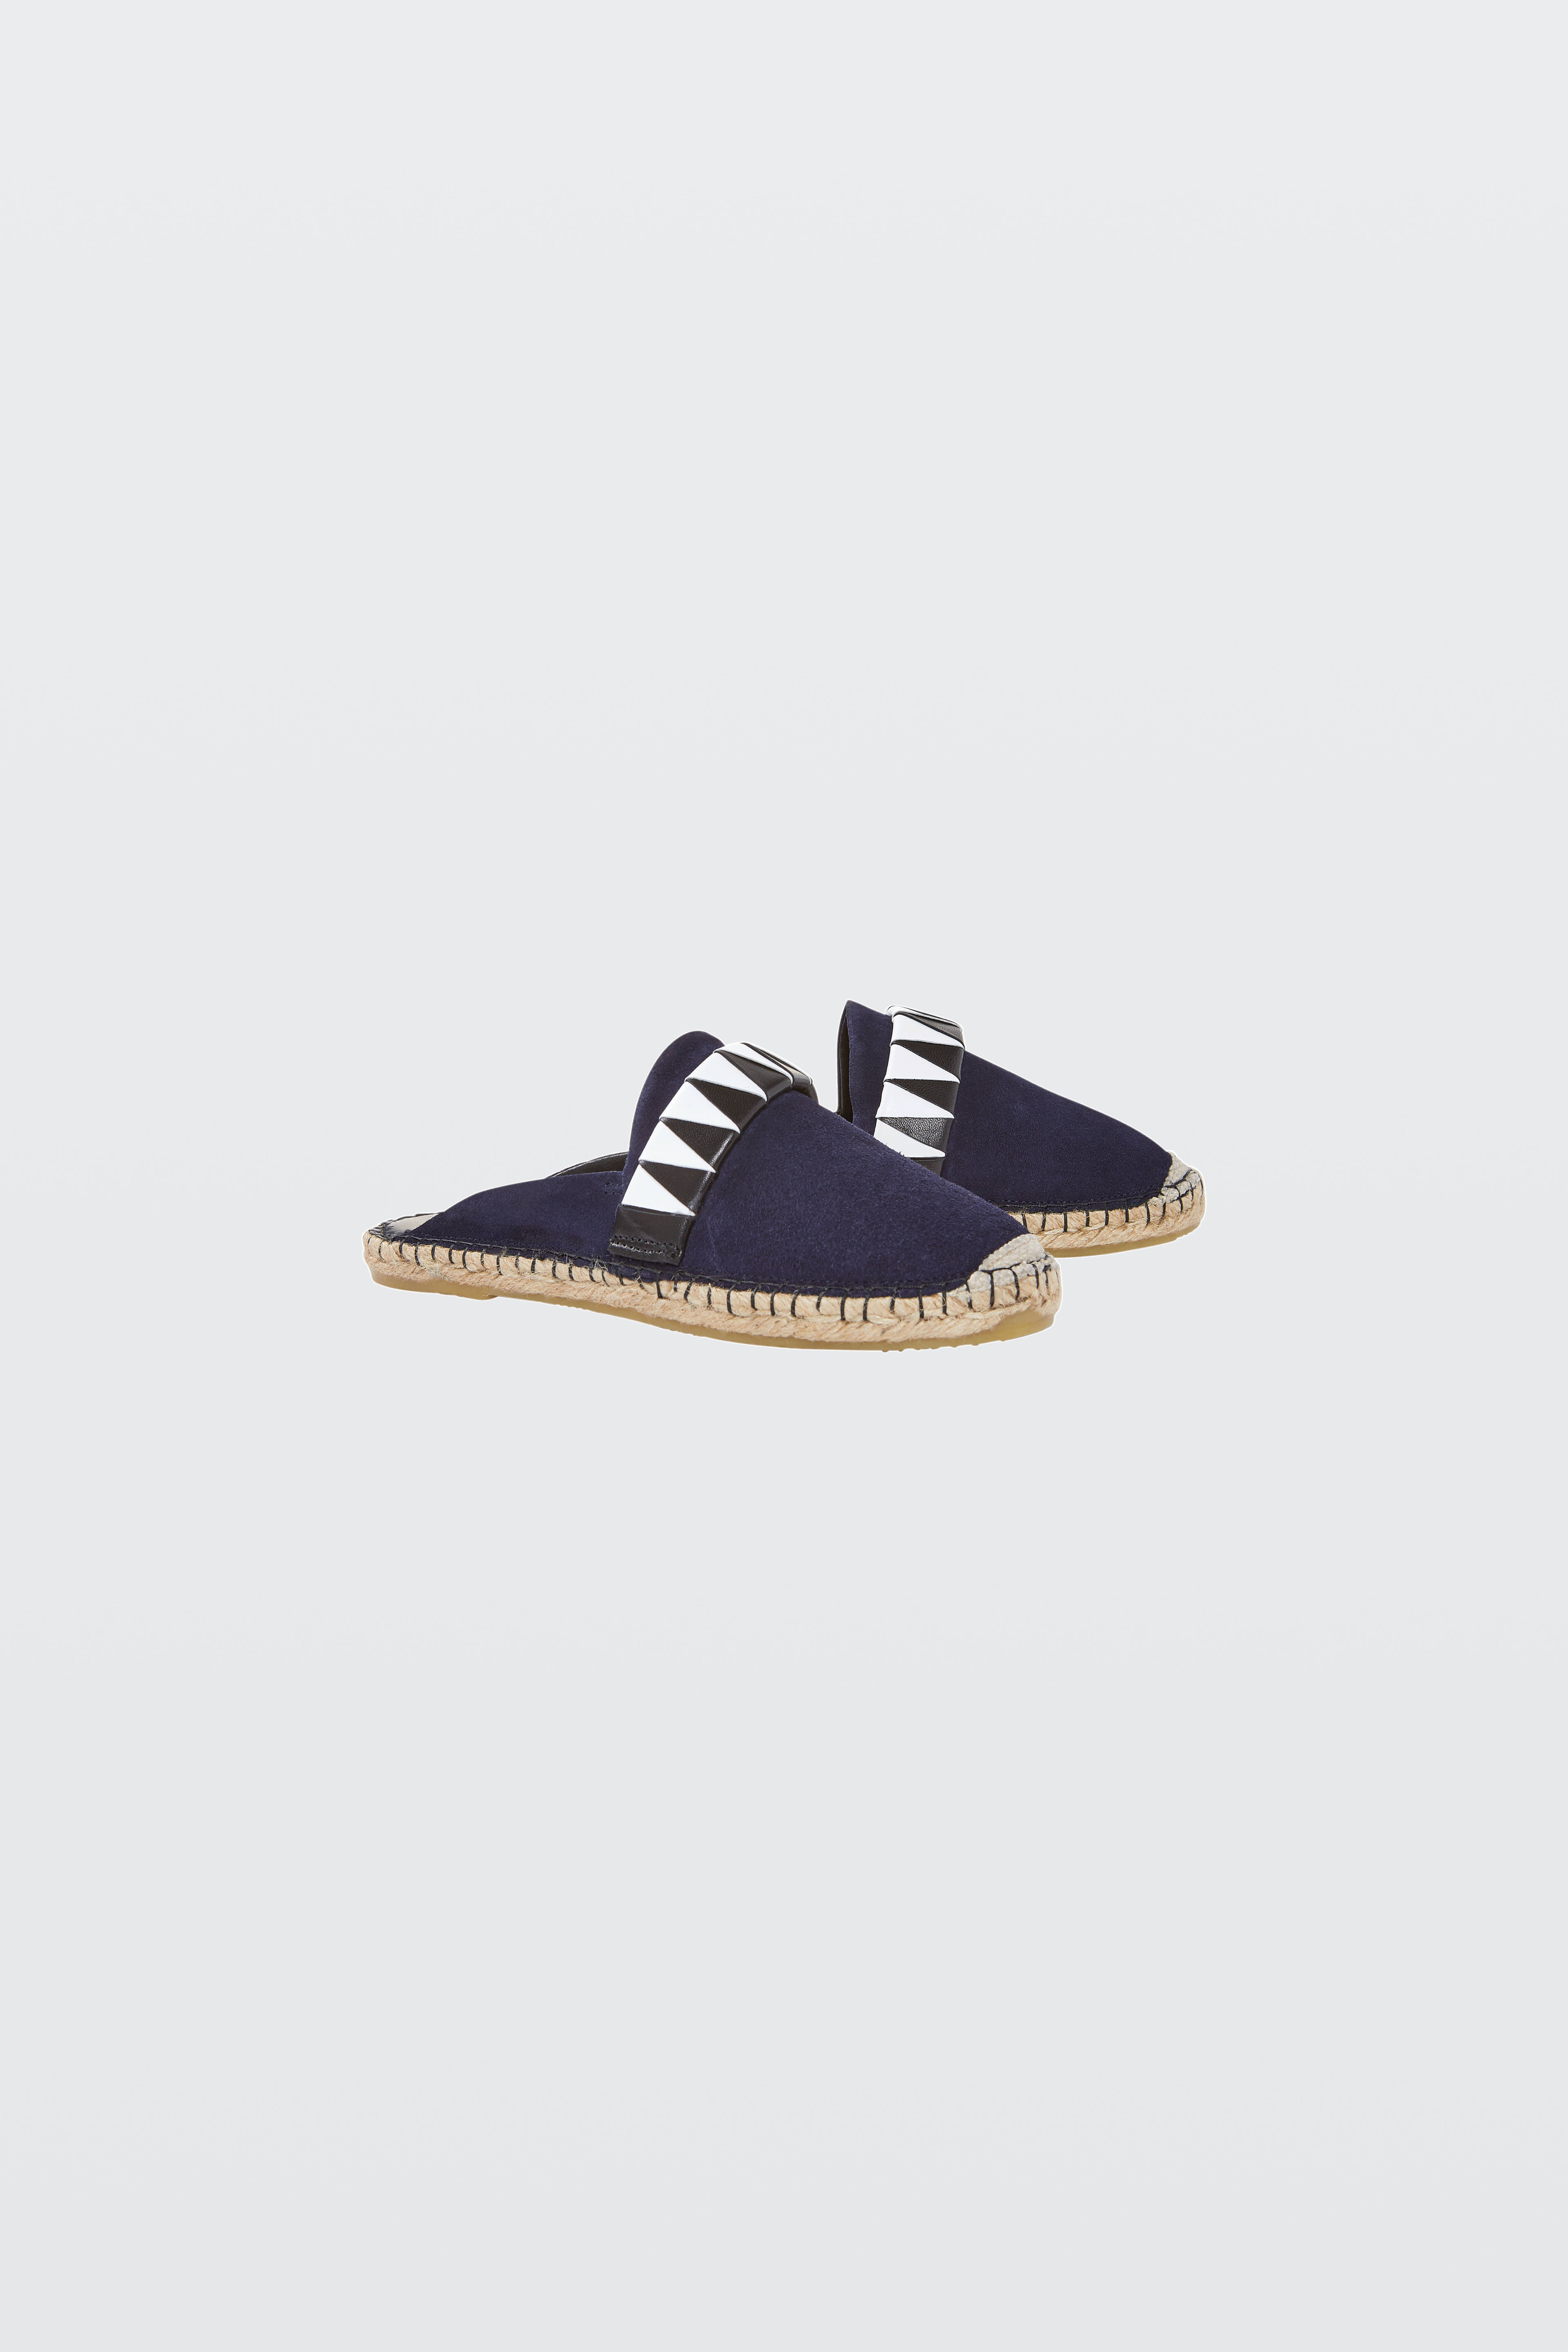 SUMMER SOFTNESS classic espadrille with ethnic tape 37 Dorothee Schumacher J603Y